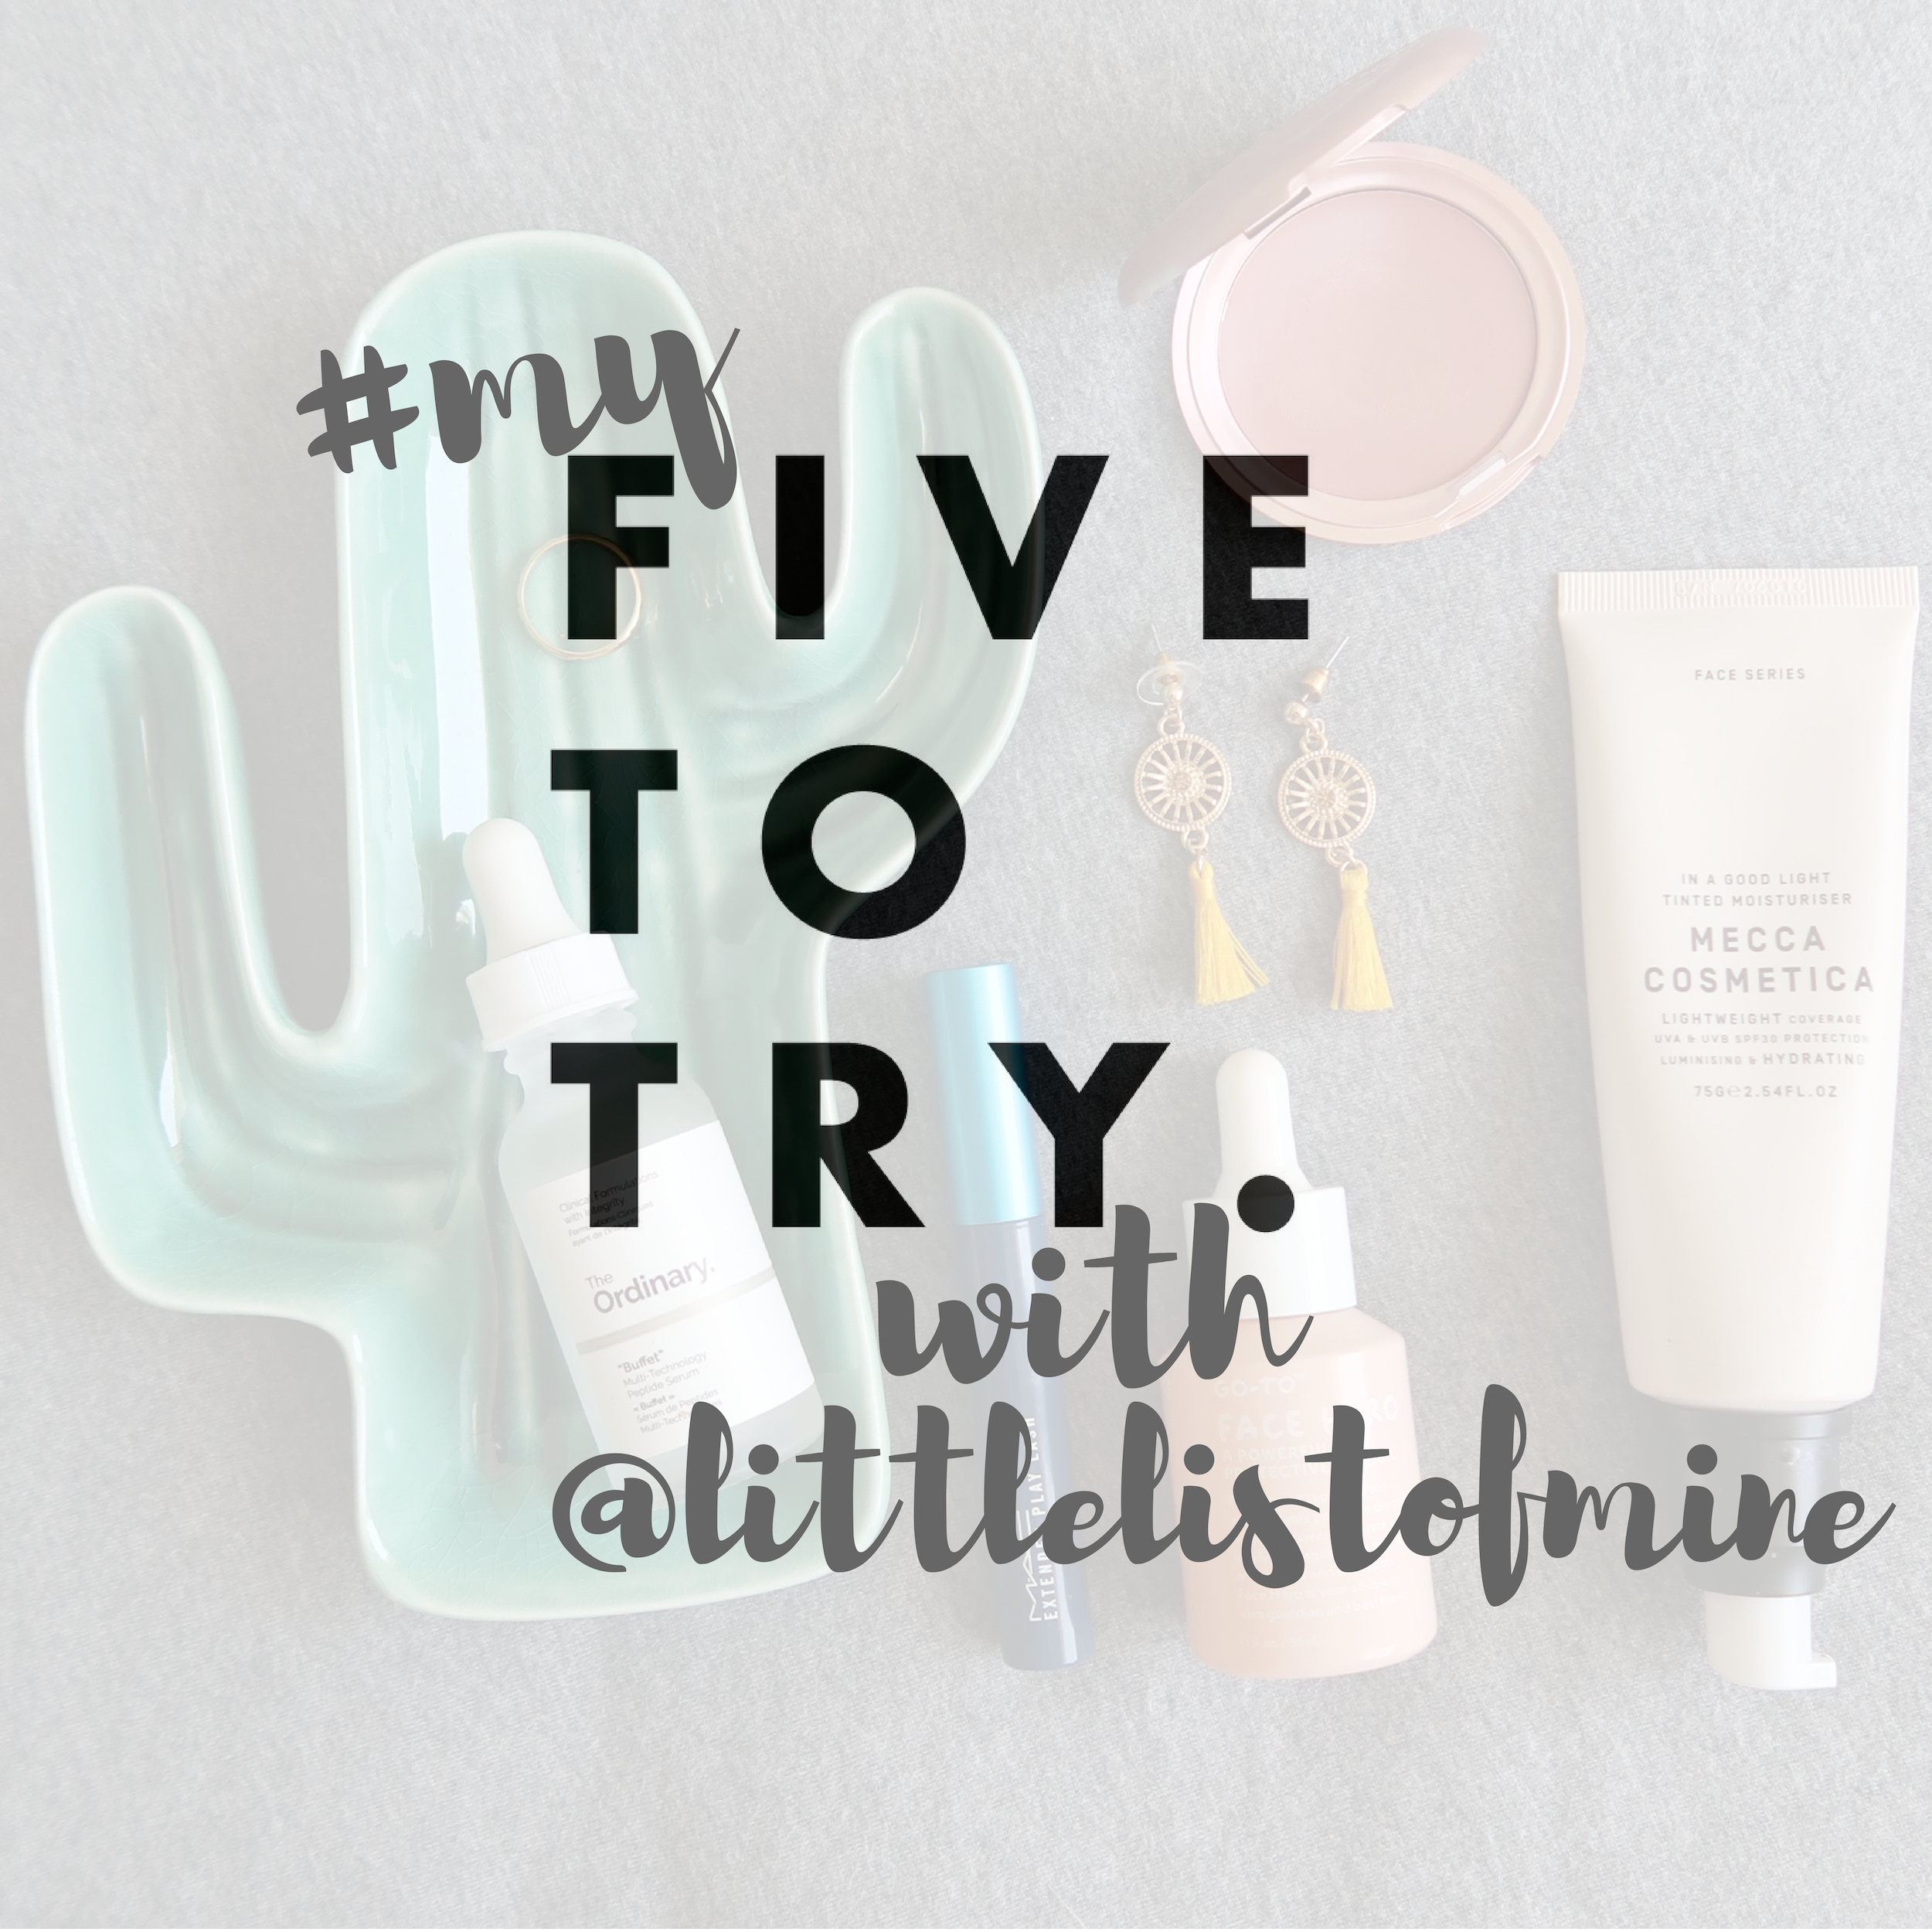 5 Beauty Products I Use Every Single Day with @littlelistofmine -